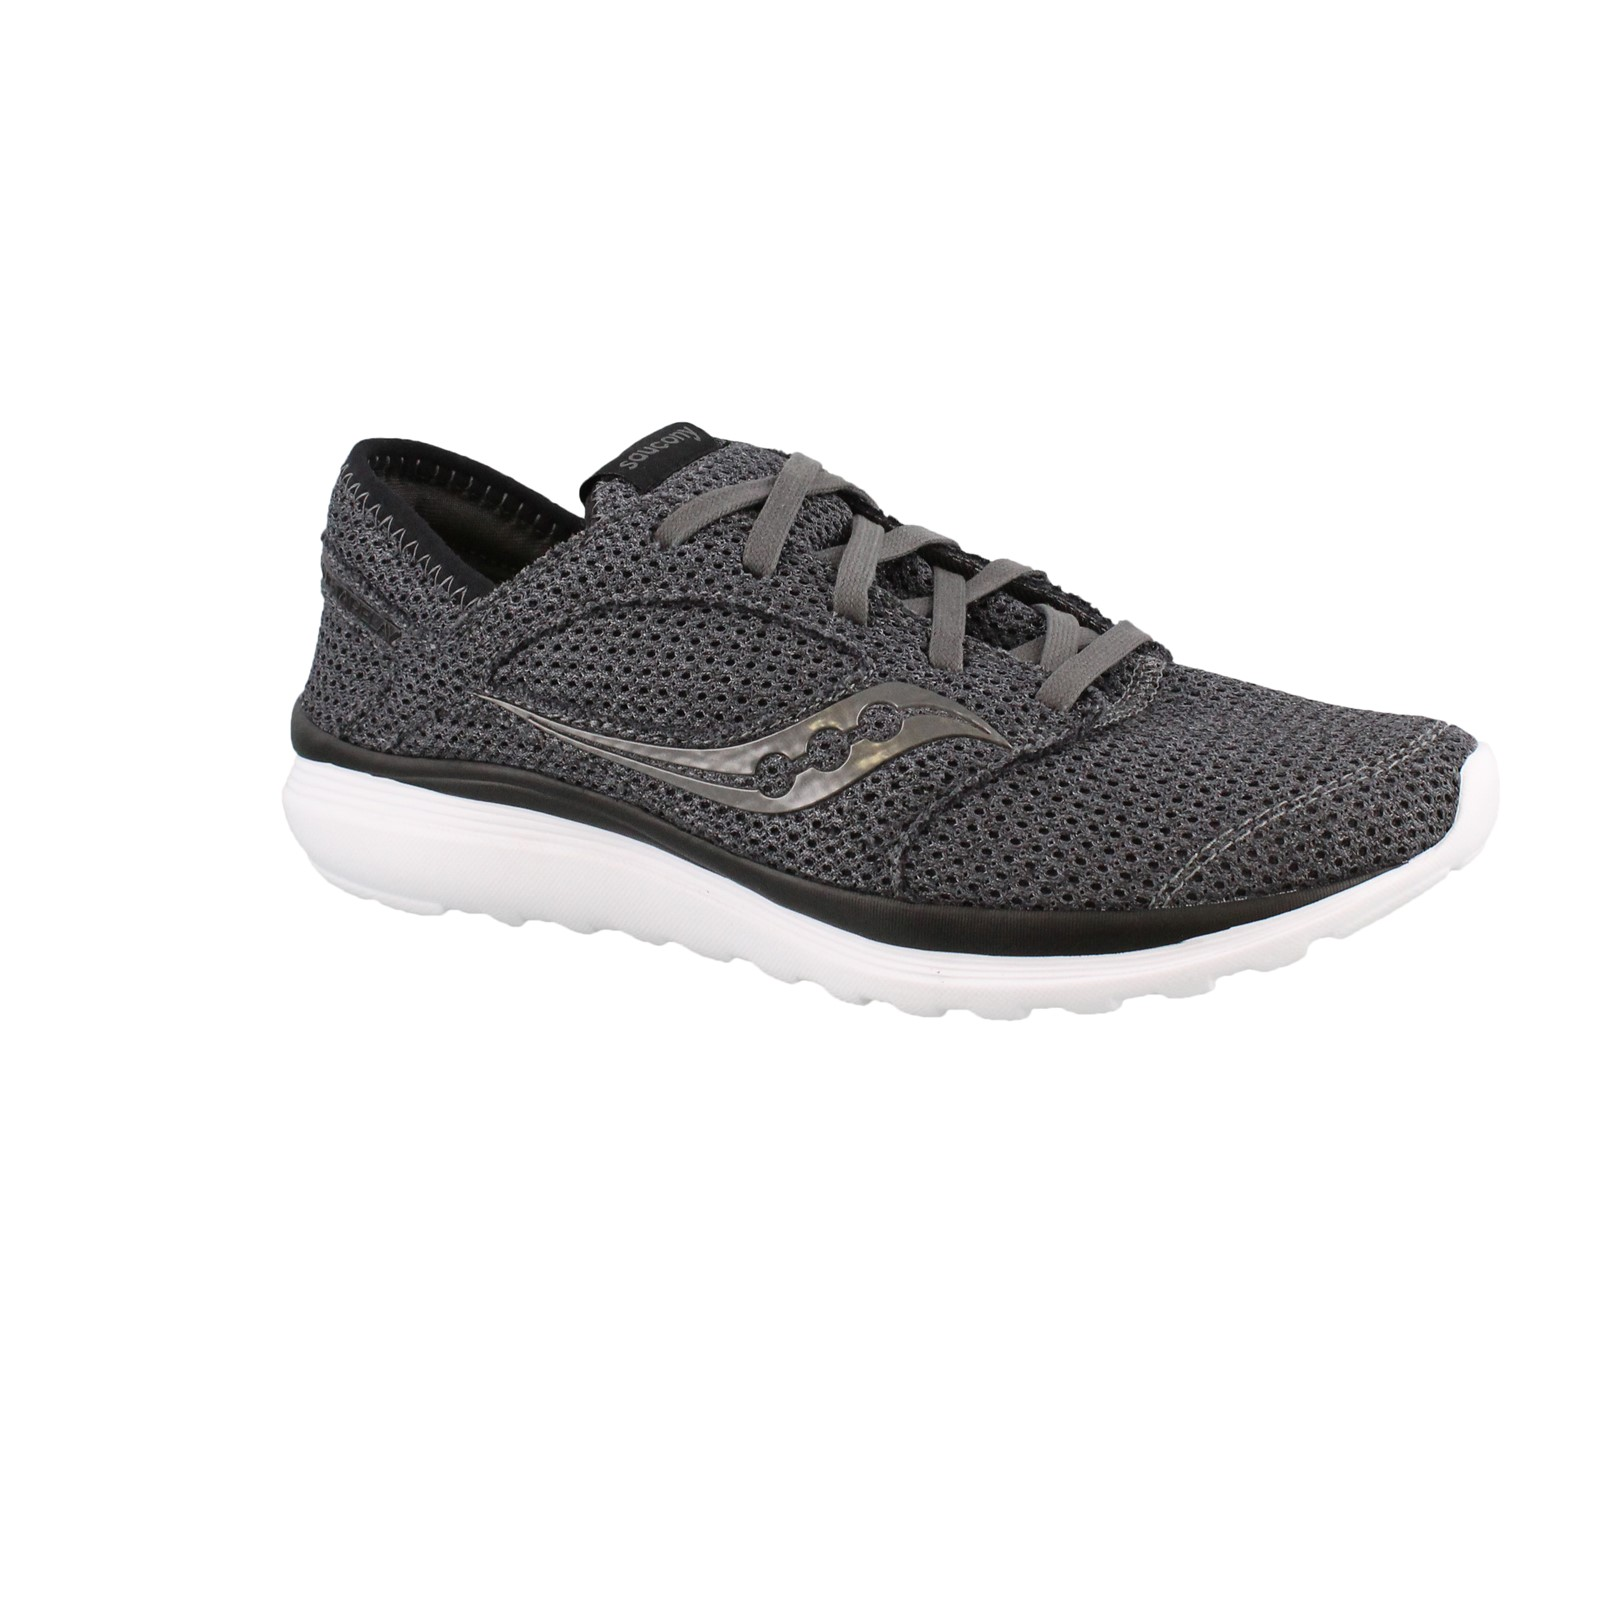 b44722a7f625 Next. add to favorites. Men s SAUCONY